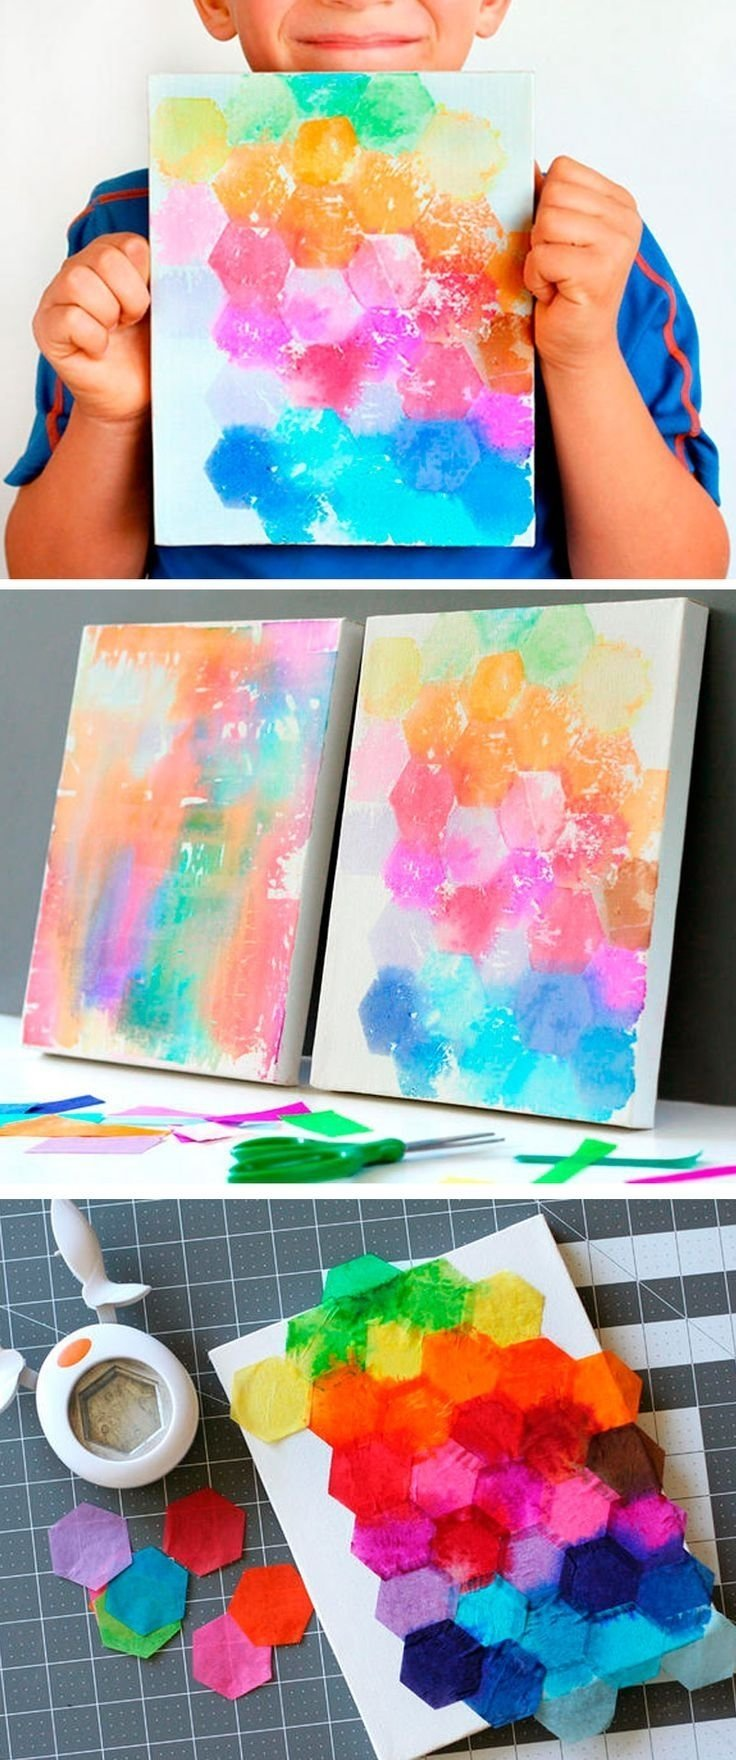 try this fun art project idea for kids! just punch shapes from